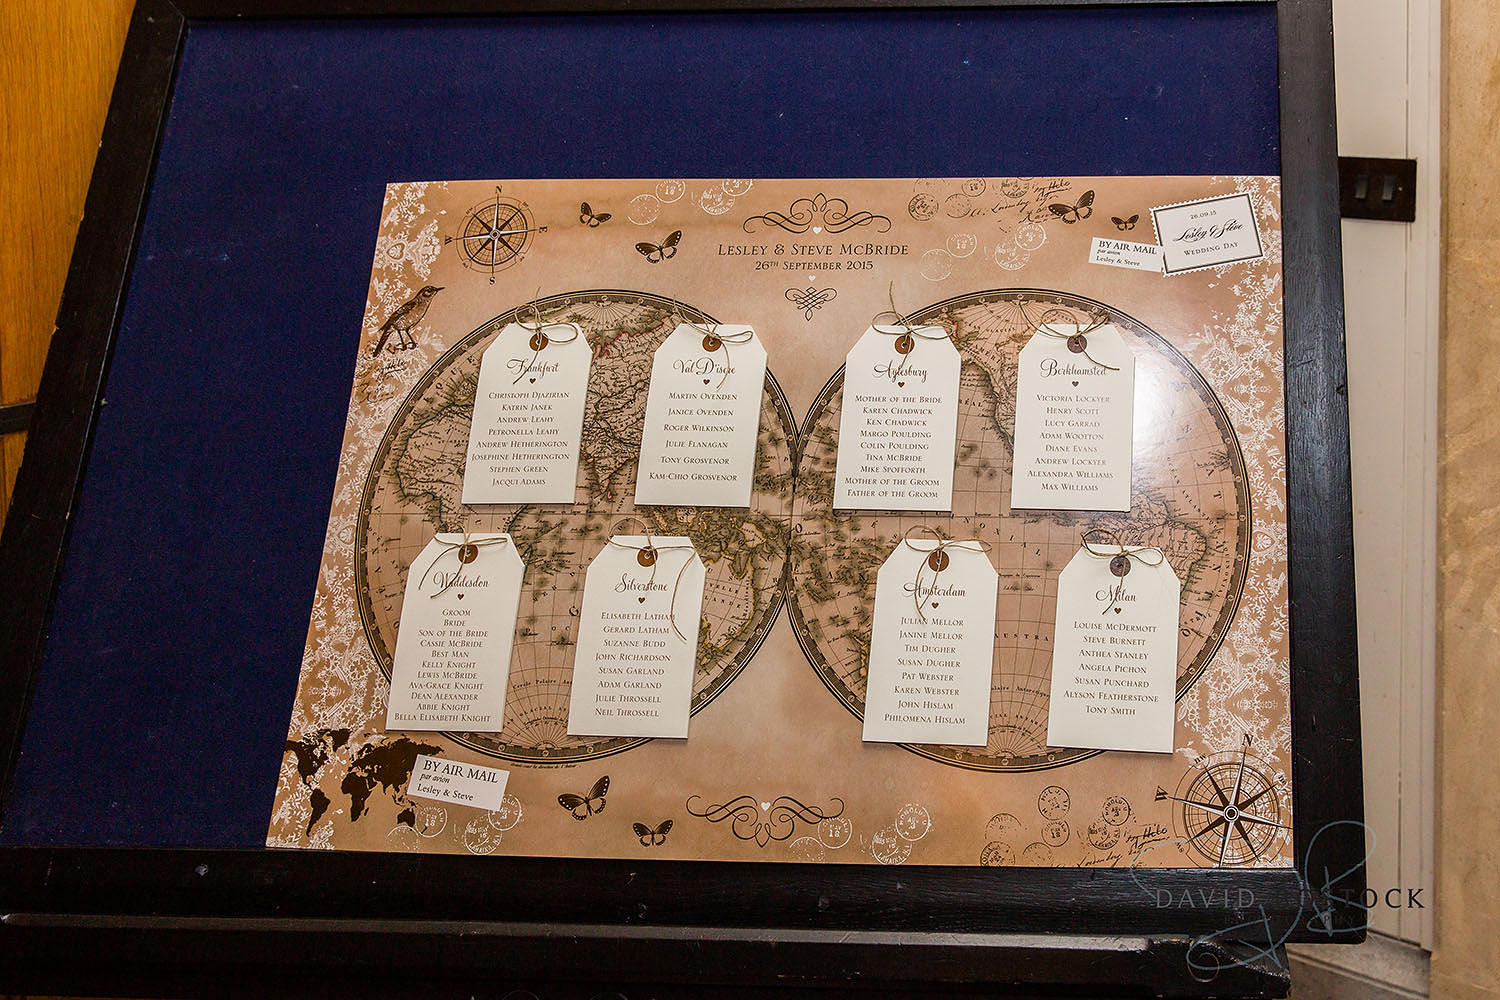 The Dairy Waddesdon wedding photo table plan